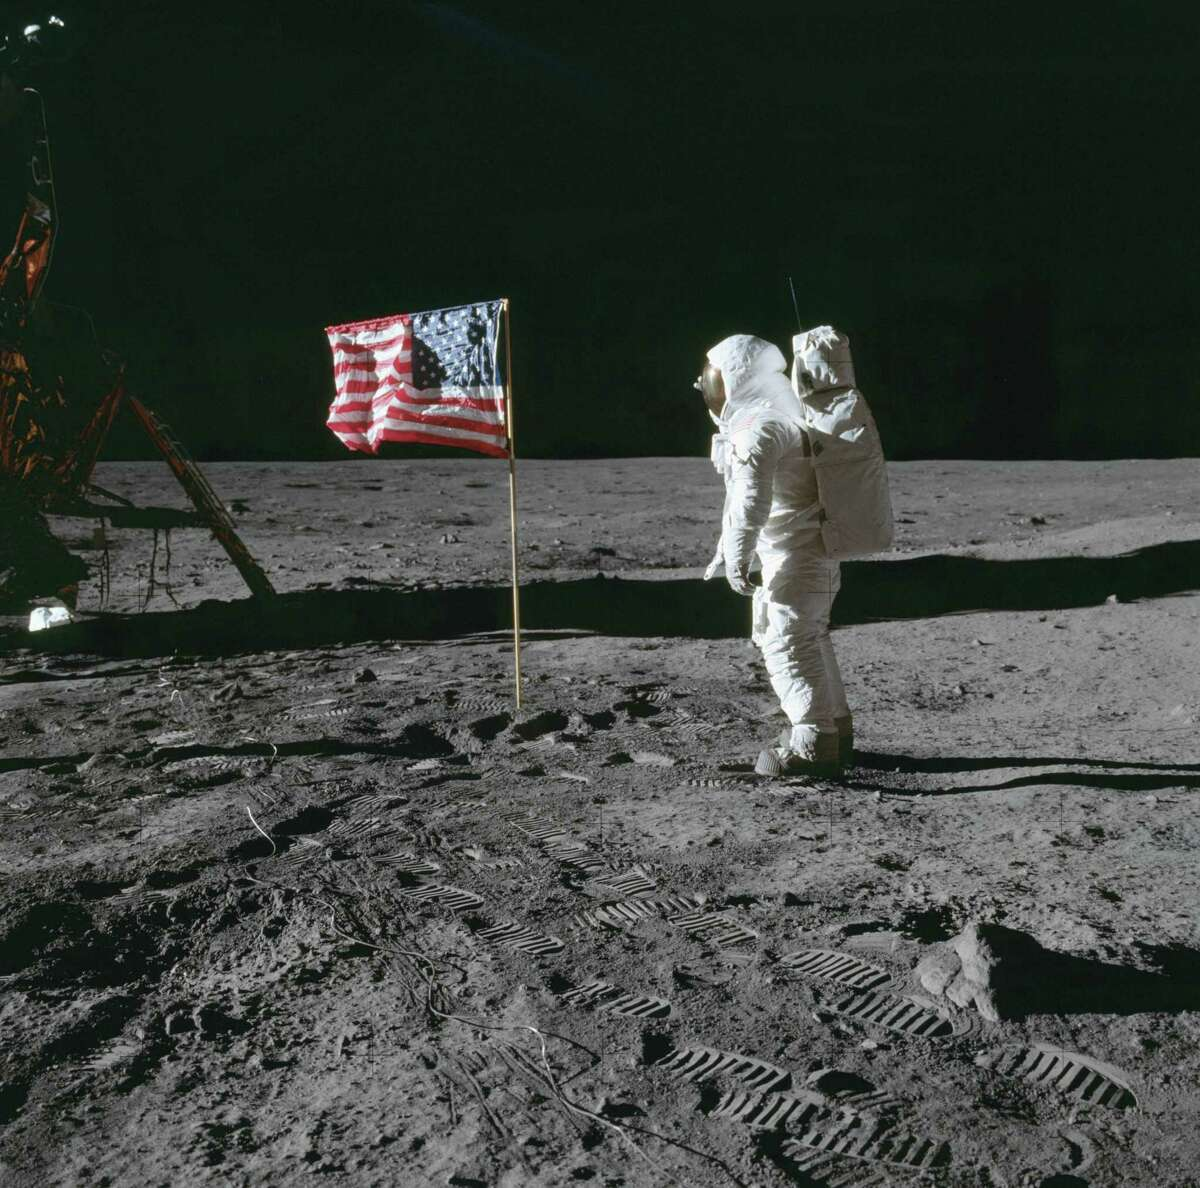 On July 20, 1969, astronaut Buzz Aldrin beside the deployed United States flag during Apollo 11 extravehicular activity on the lunar surface. The Lunar Module is on the left, and the footprints of the astronauts are clearly visible in the soil of the moon.